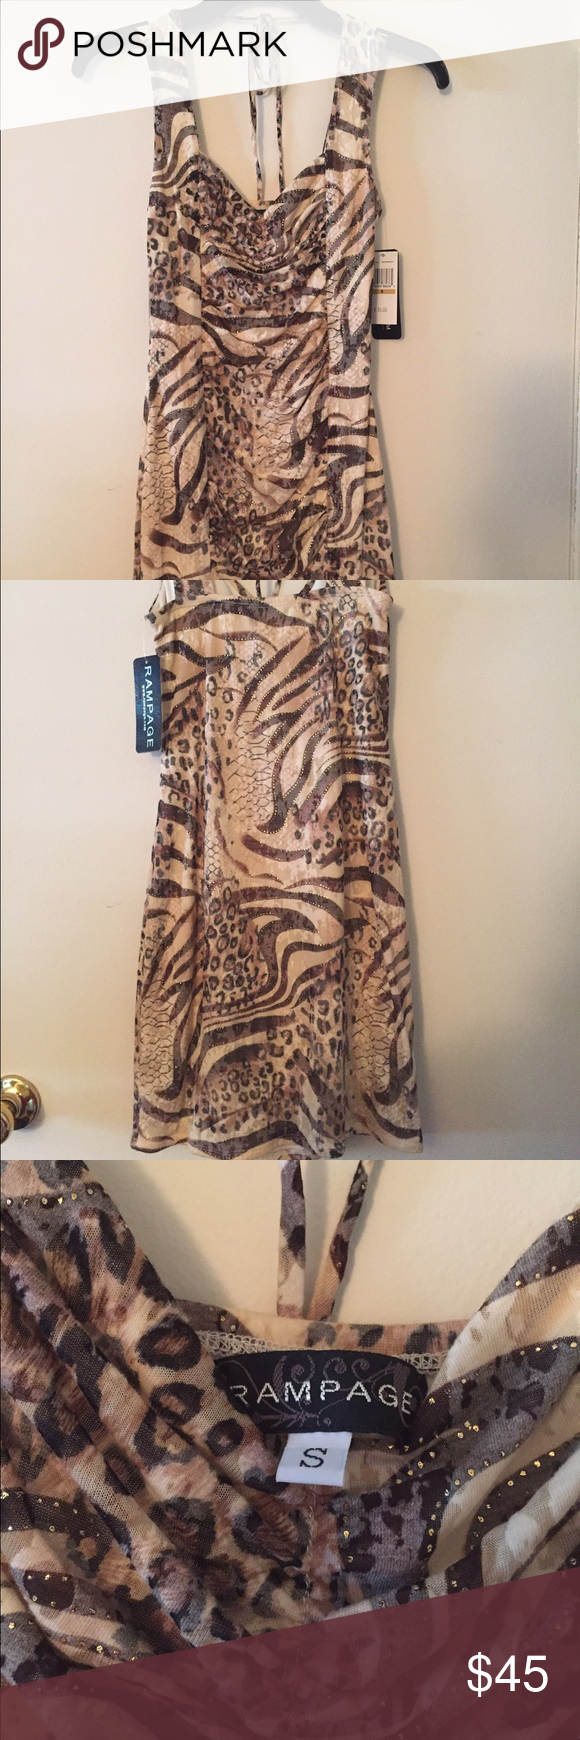 Fitted going out dress New. Zebra, cheetah print, short fitted dress. Rampage Dresses Mini